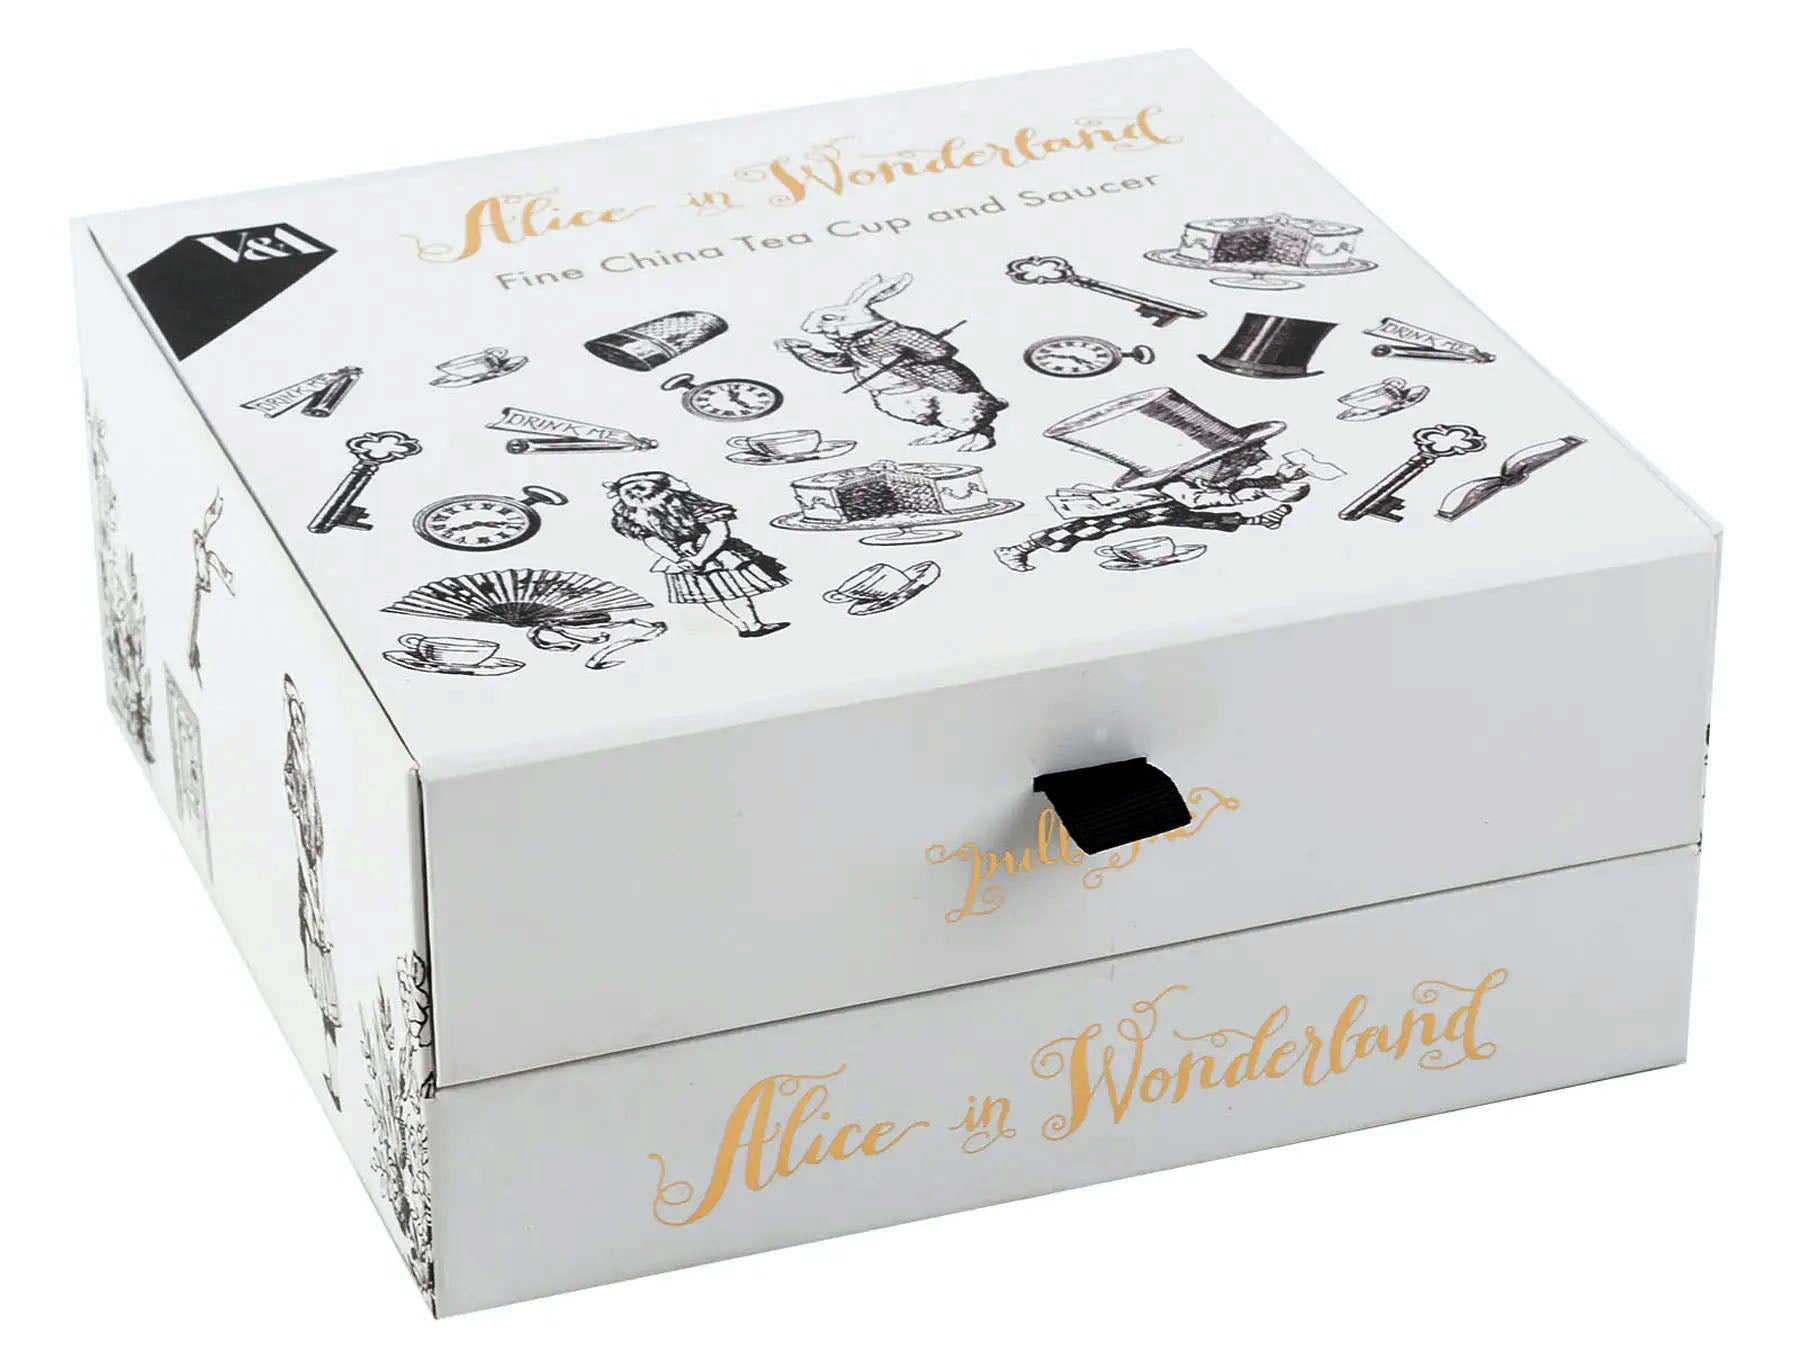 V&A Alice in Wonderland Cup & Saucer Gift Boxed